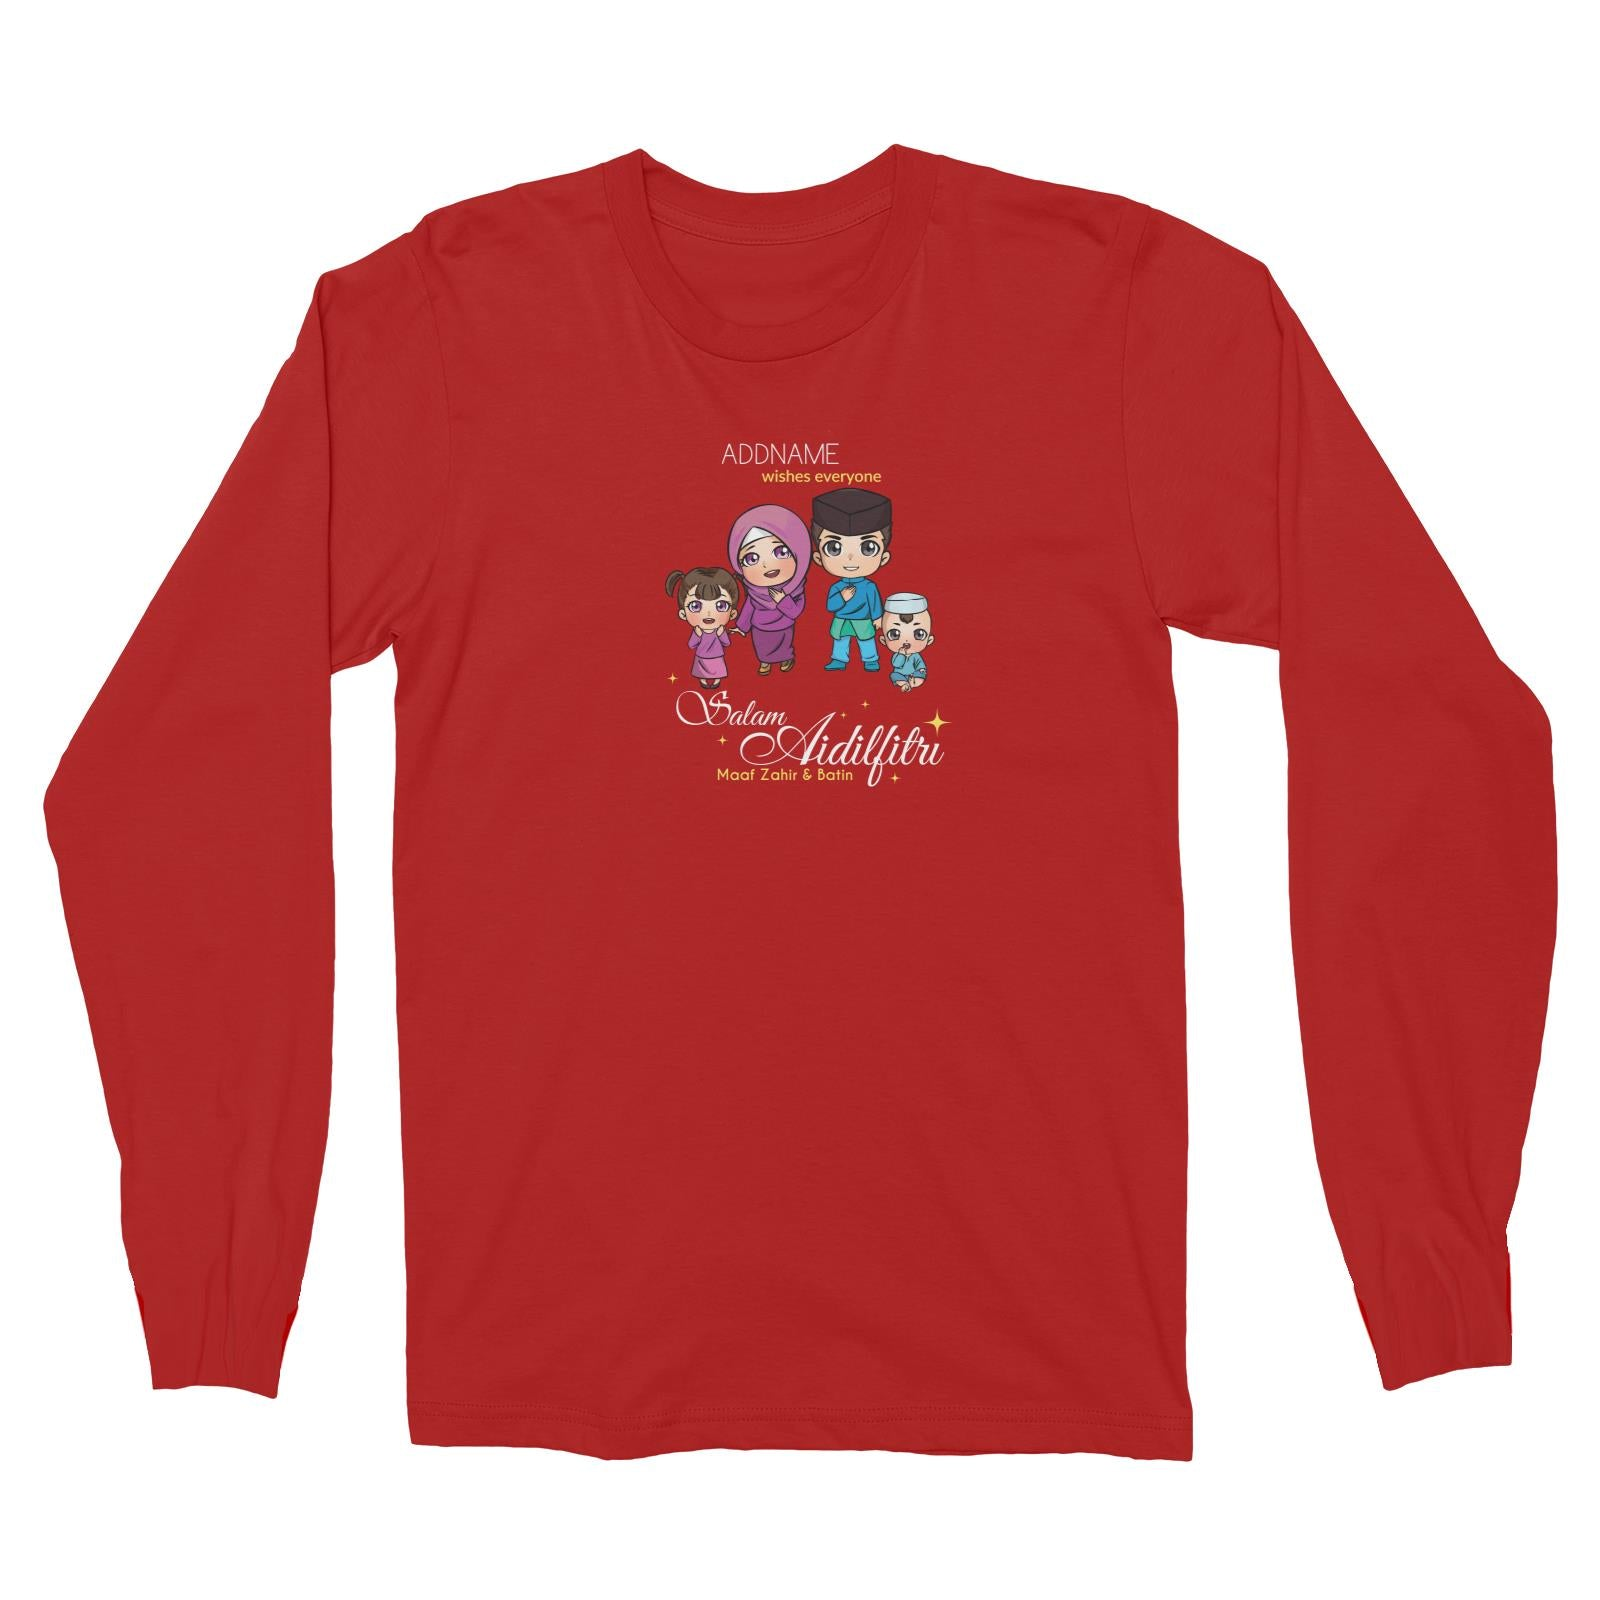 Raya Chibi Family Girl And Baby Boy Addname Wishes Everyone Salam Aidilfitri Maaf Zahir & Batin Long Sleeve Unisex T-Shirt